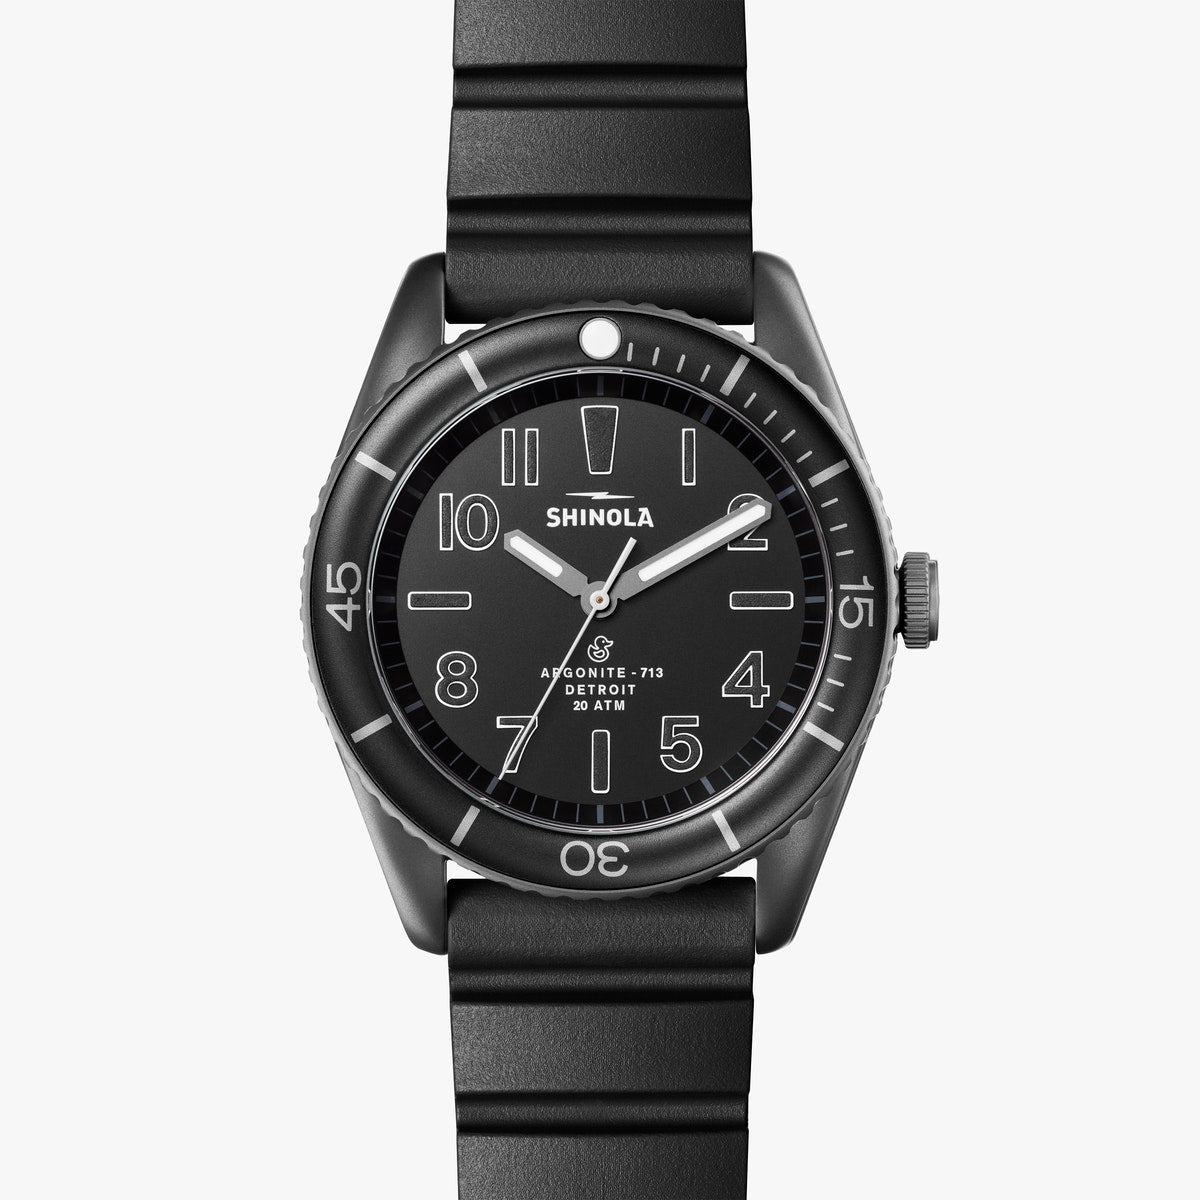 Shinola Duck Watch with a Black Dial